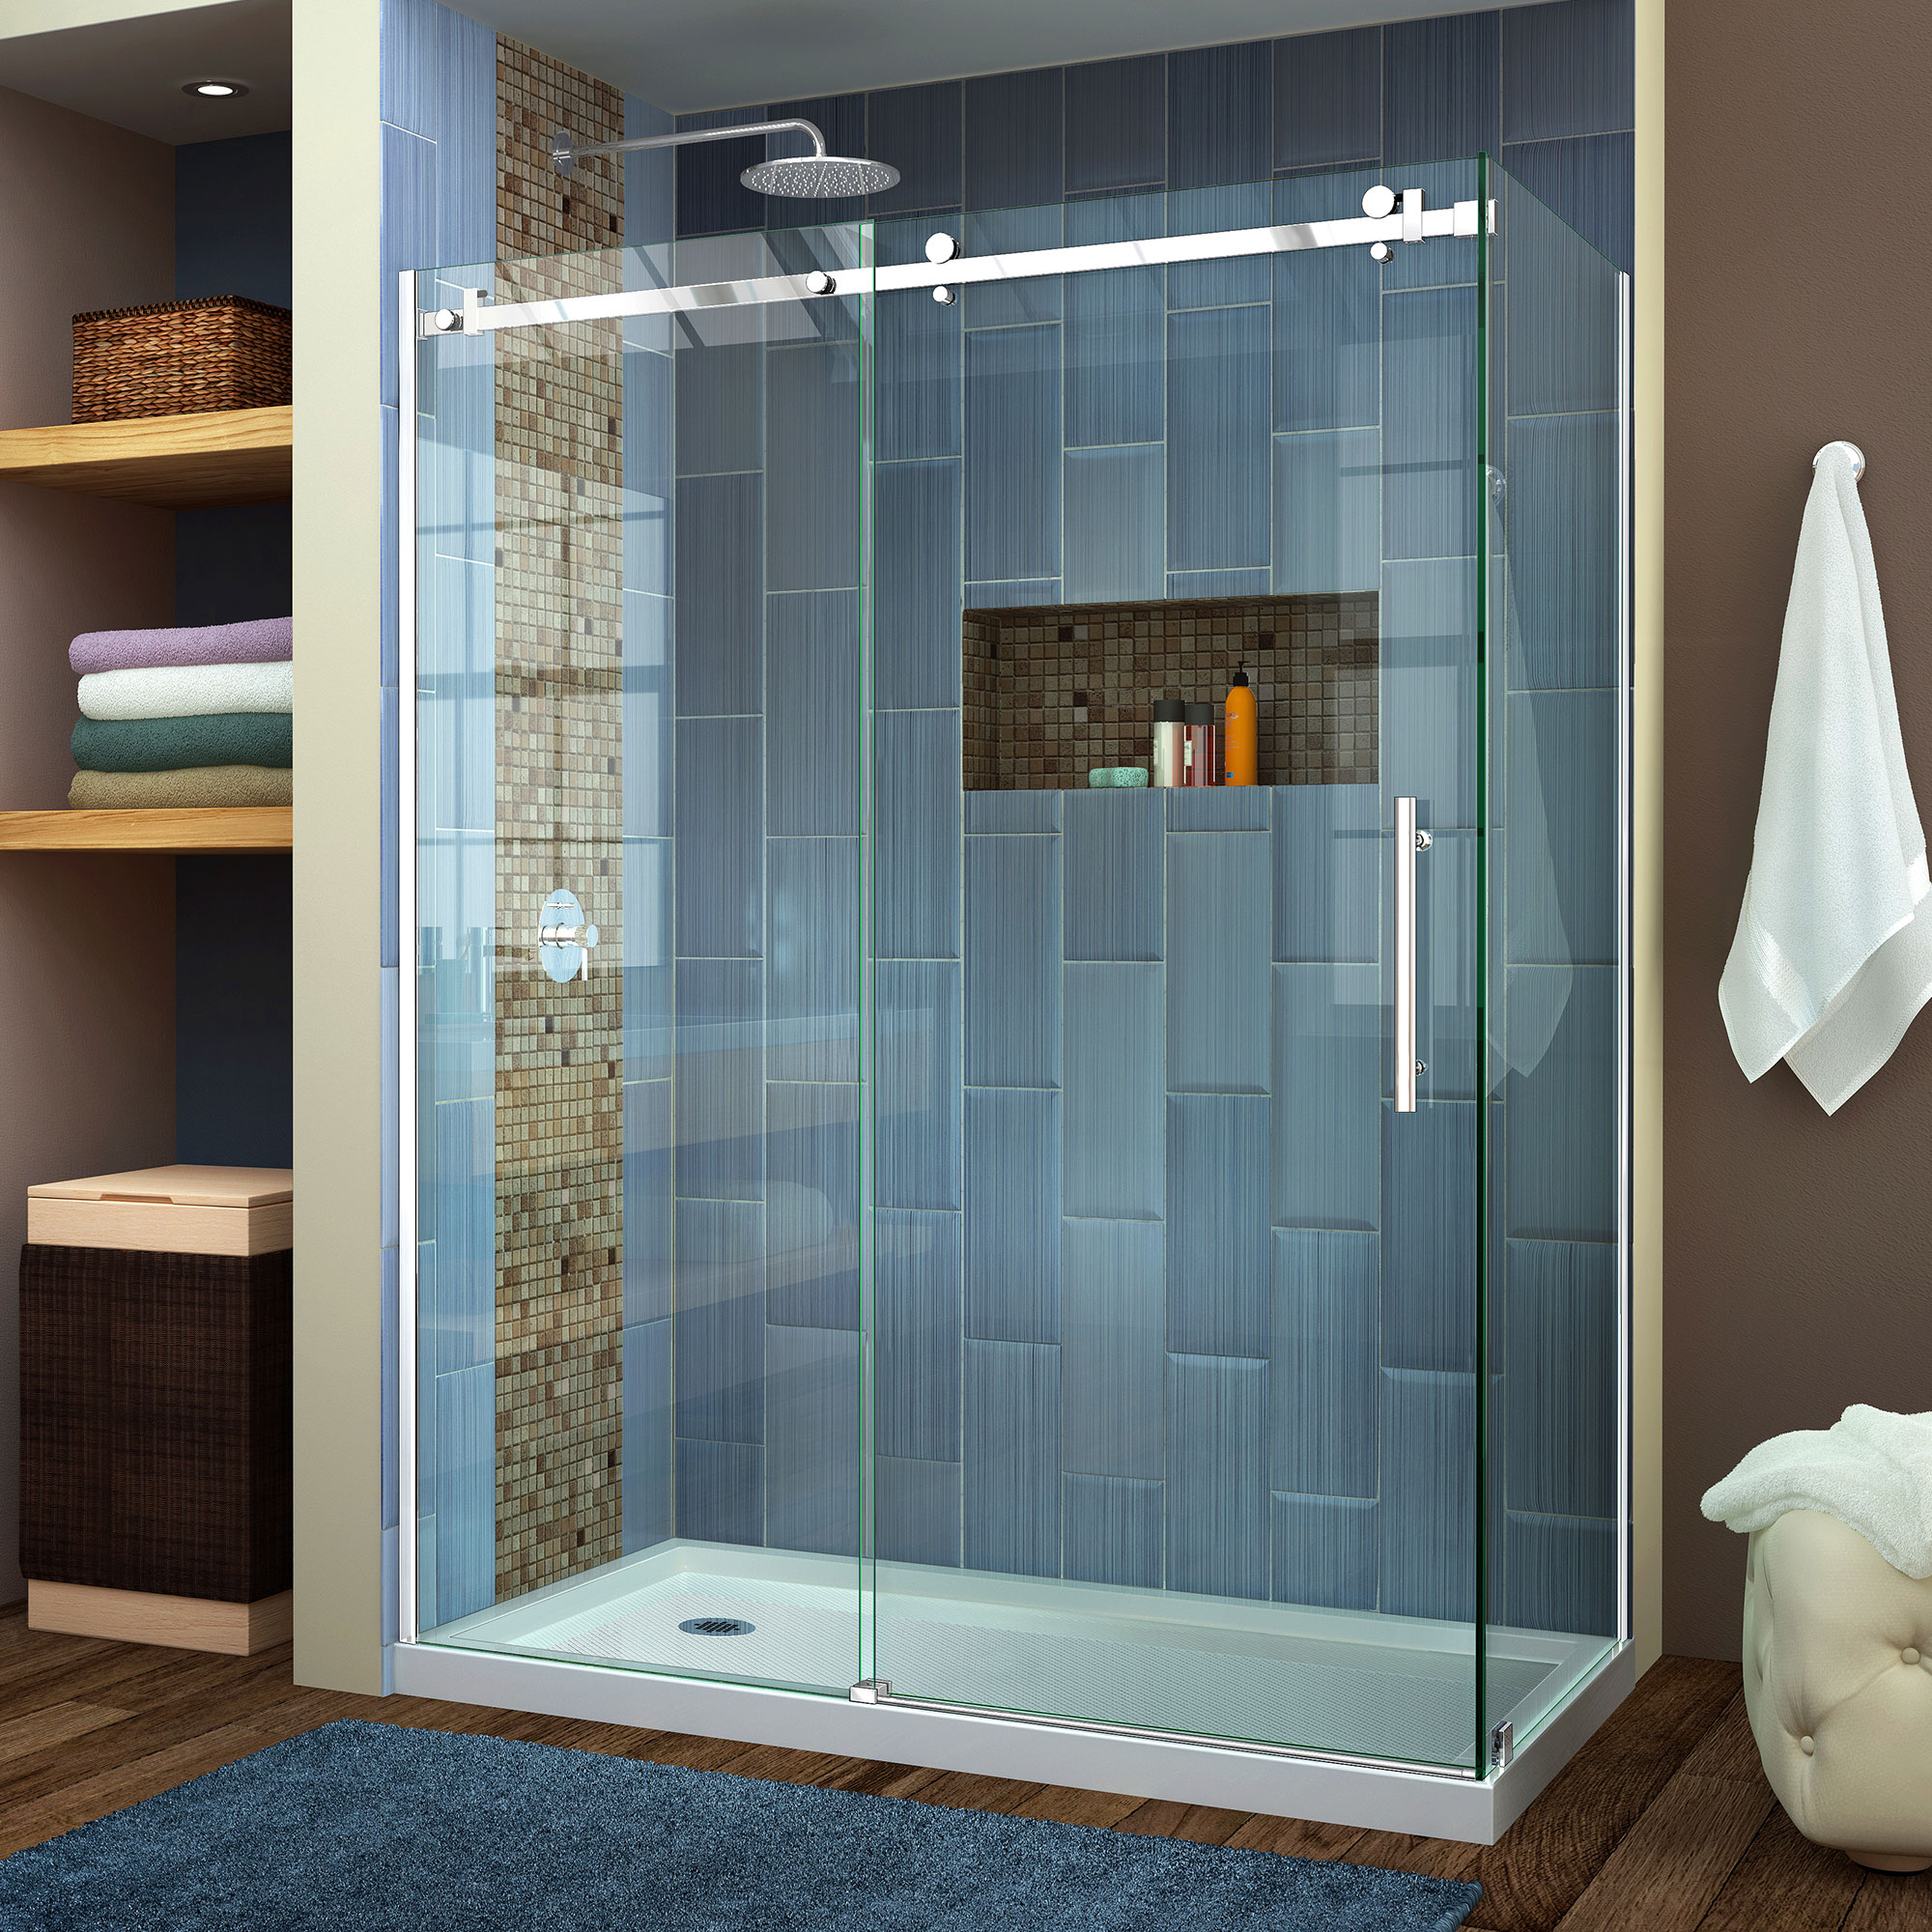 DreamLine Enigma Air 34 3/4 in. D x 60 3/8 in. W x 76 in. H Frameless Sliding Shower Enclosure in Brushed Stainless Steel